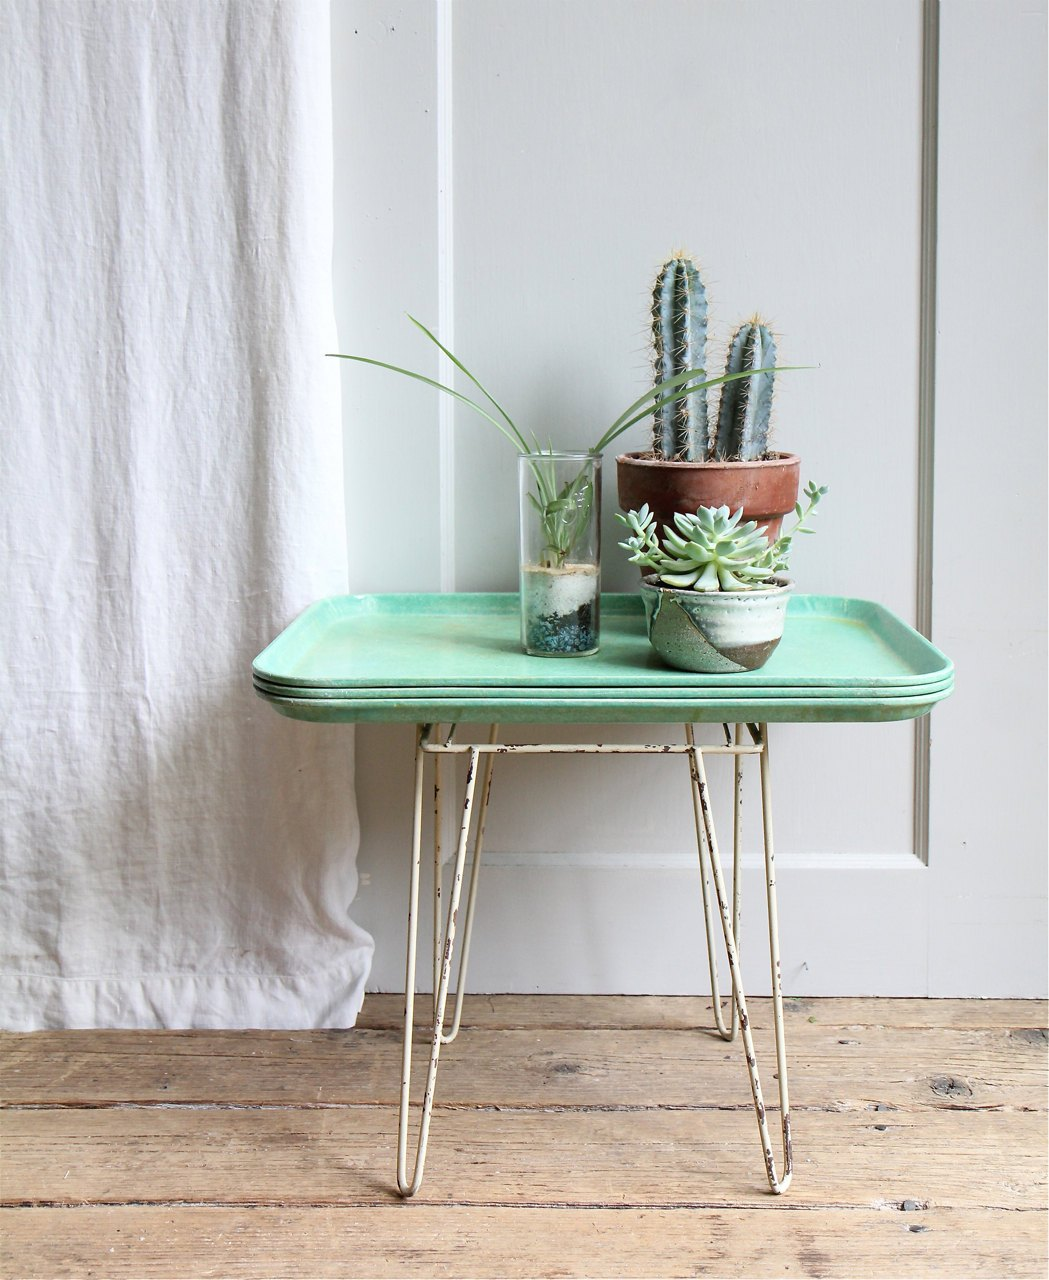 mise en scene deco cactus tendance boheme scandinave decoration